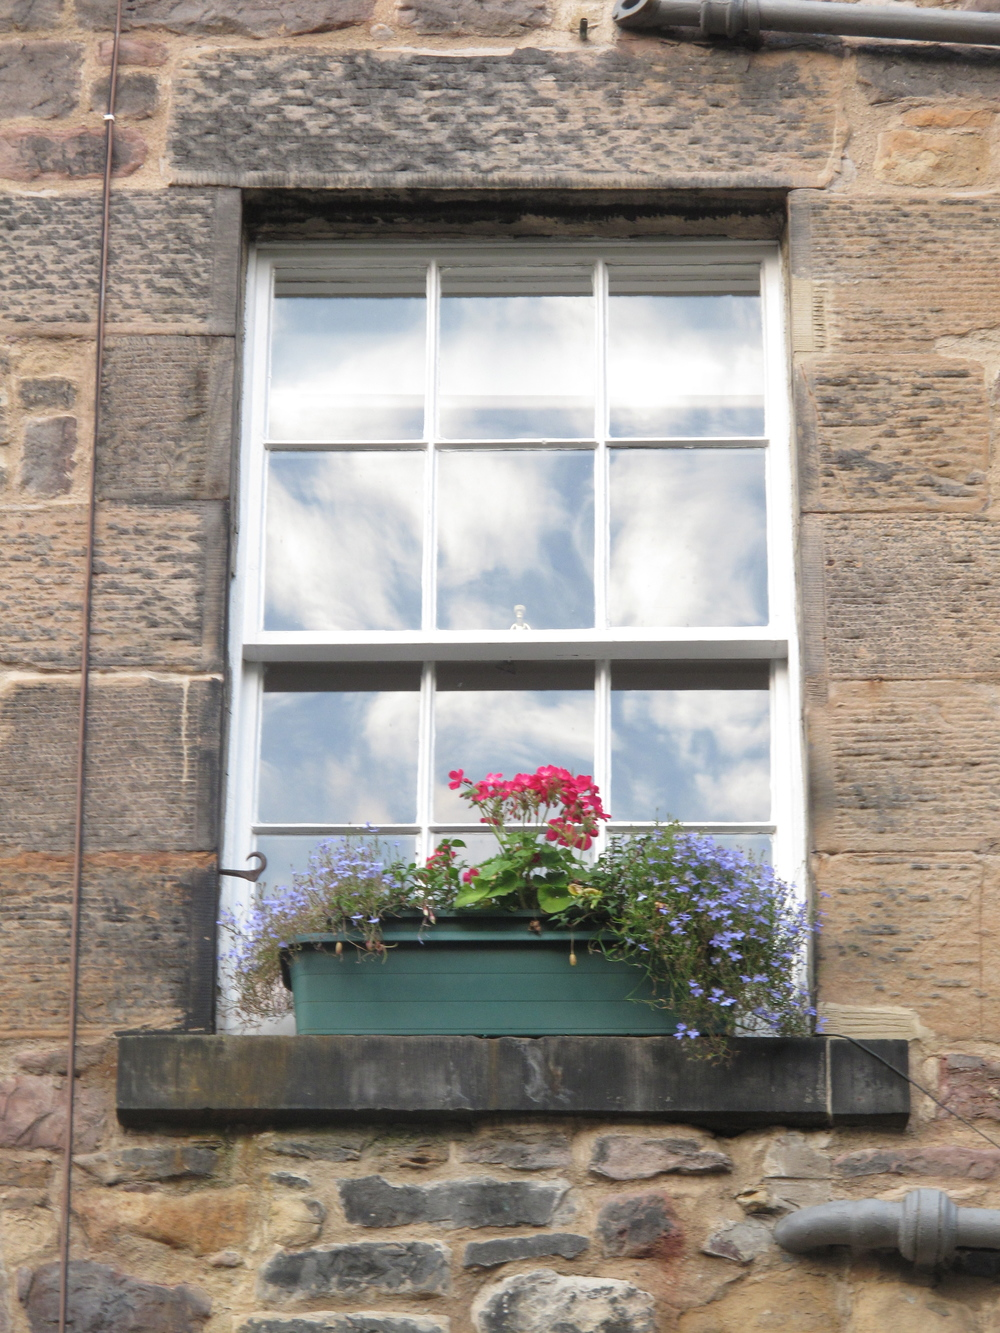 Clouds and flowers at the window in Edinburgh.